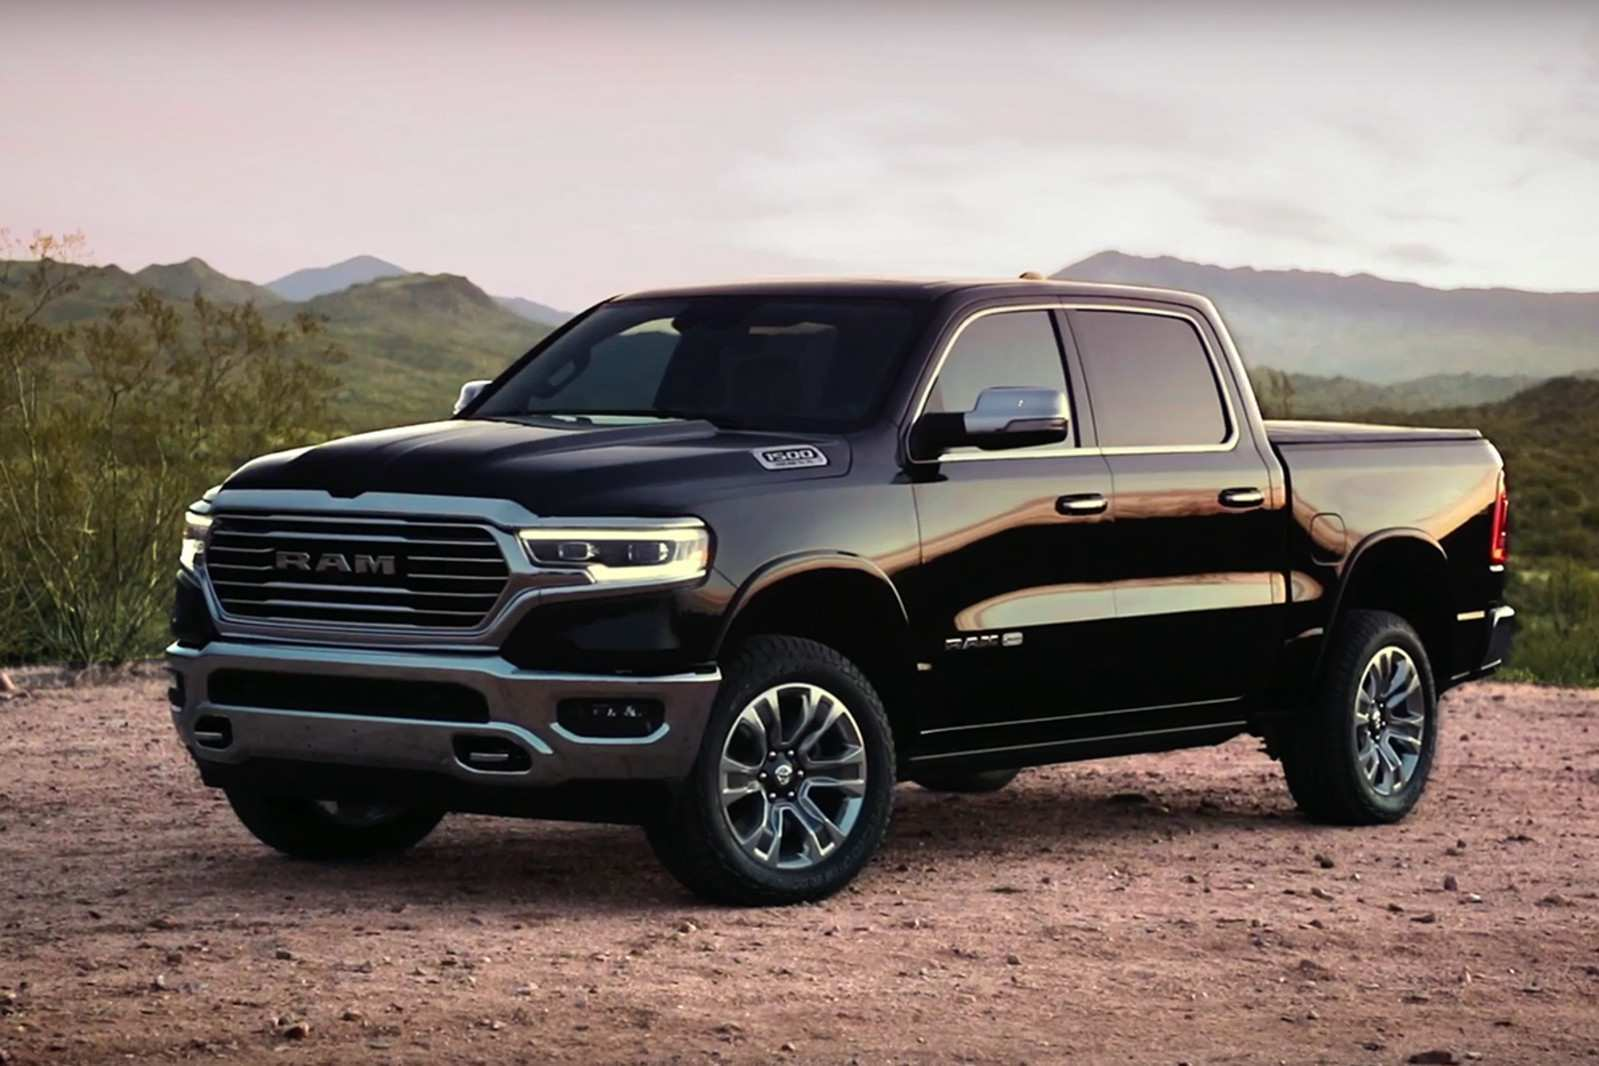 40 The Best 2019 Dodge Ram First Drive